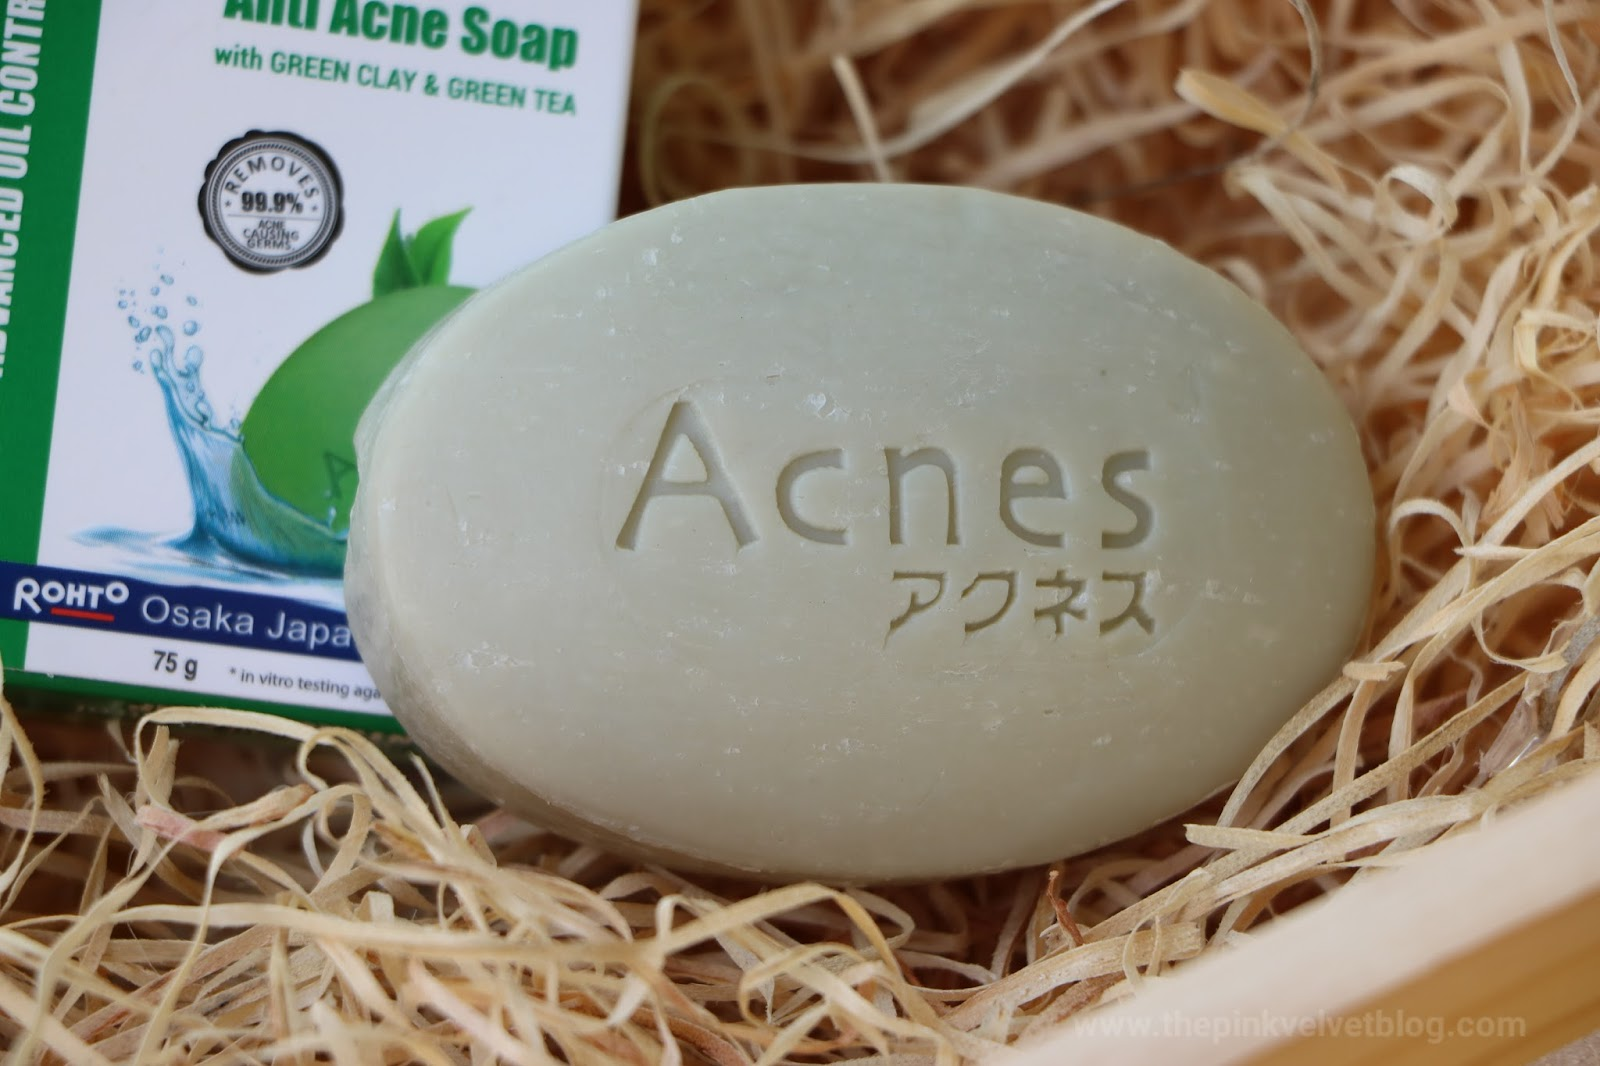 Rohto ACNES Advanced Oil-Control Anti-Acne Soap Review